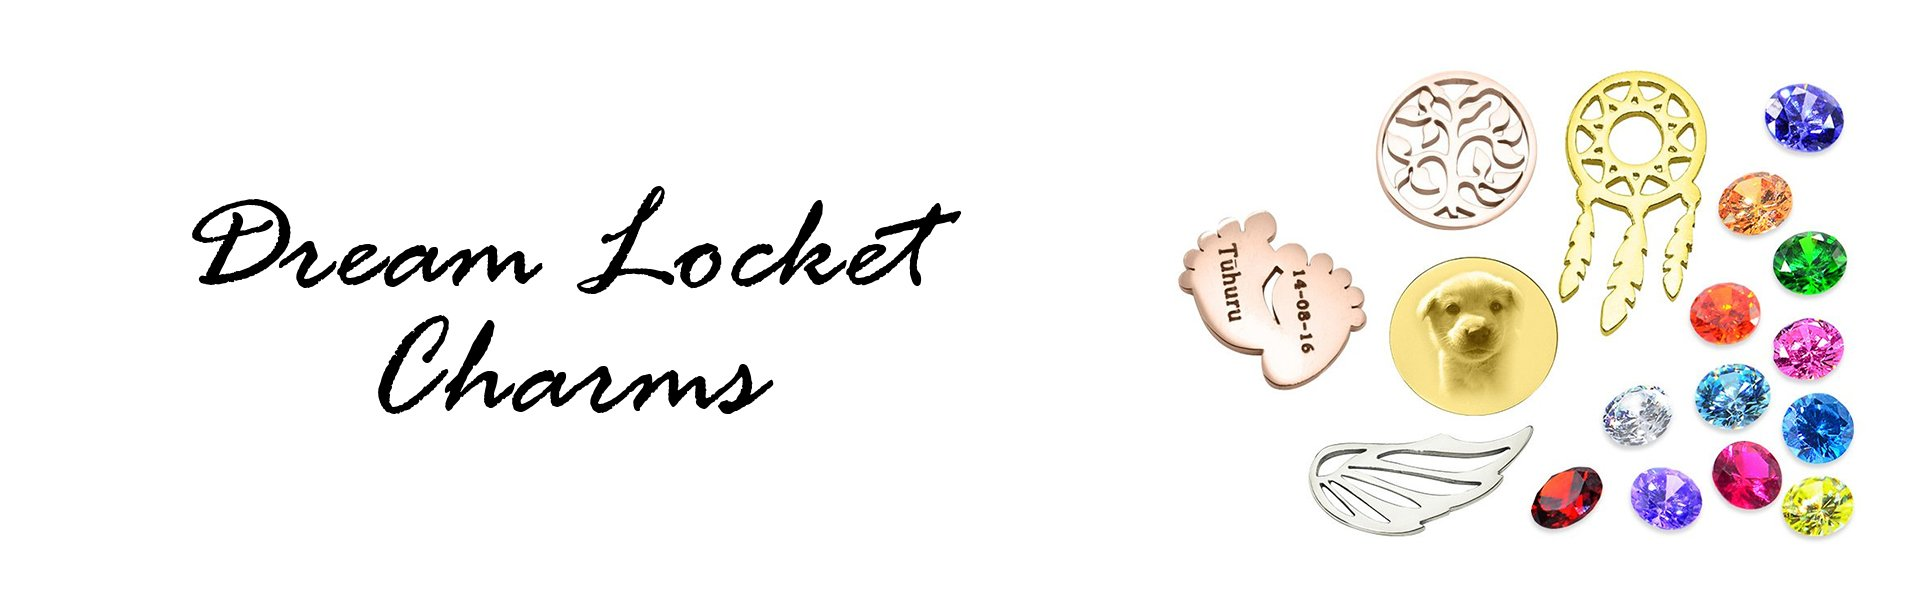 Dream Locket Charms